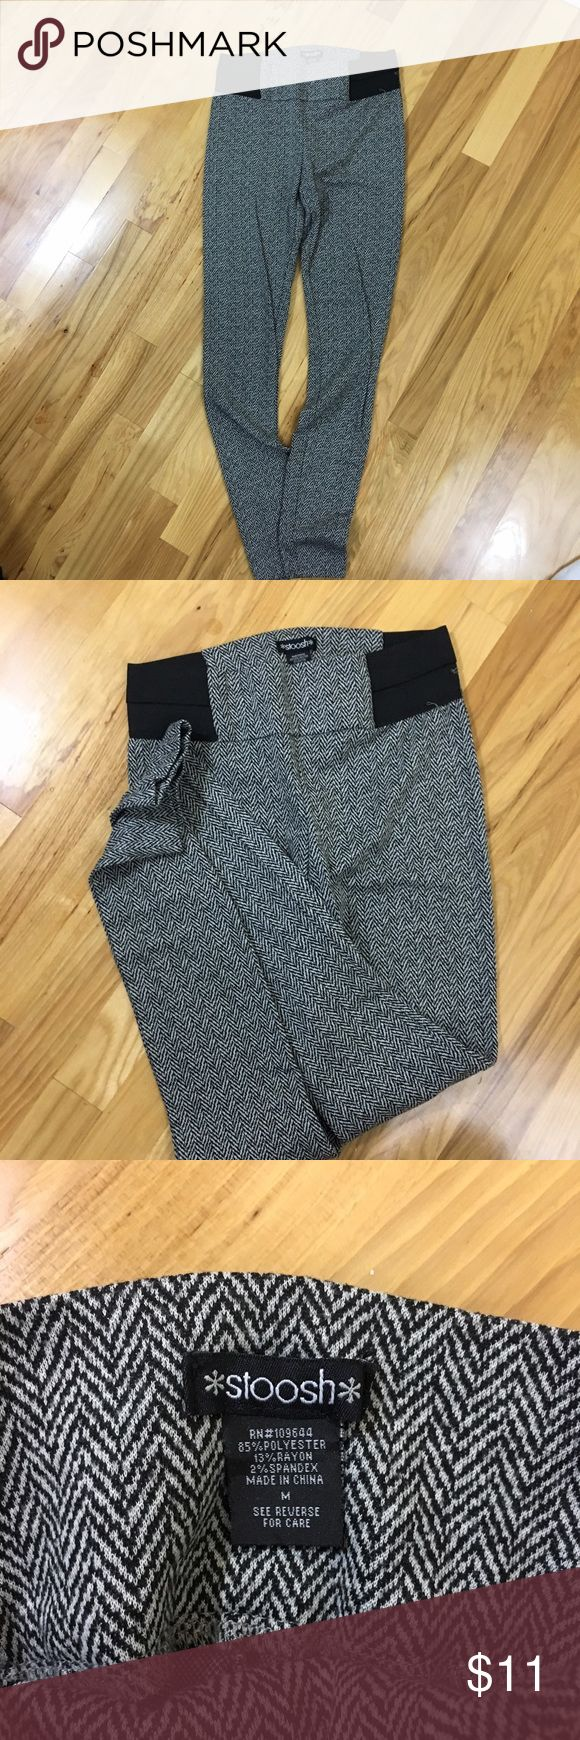 Women skinny pants size medium Women size medium skinny pants purchased from Macy's. Runs a bit small so if you are size small this is perfect for you. Can wear it at the gym too! Stoosh Pants Skinny